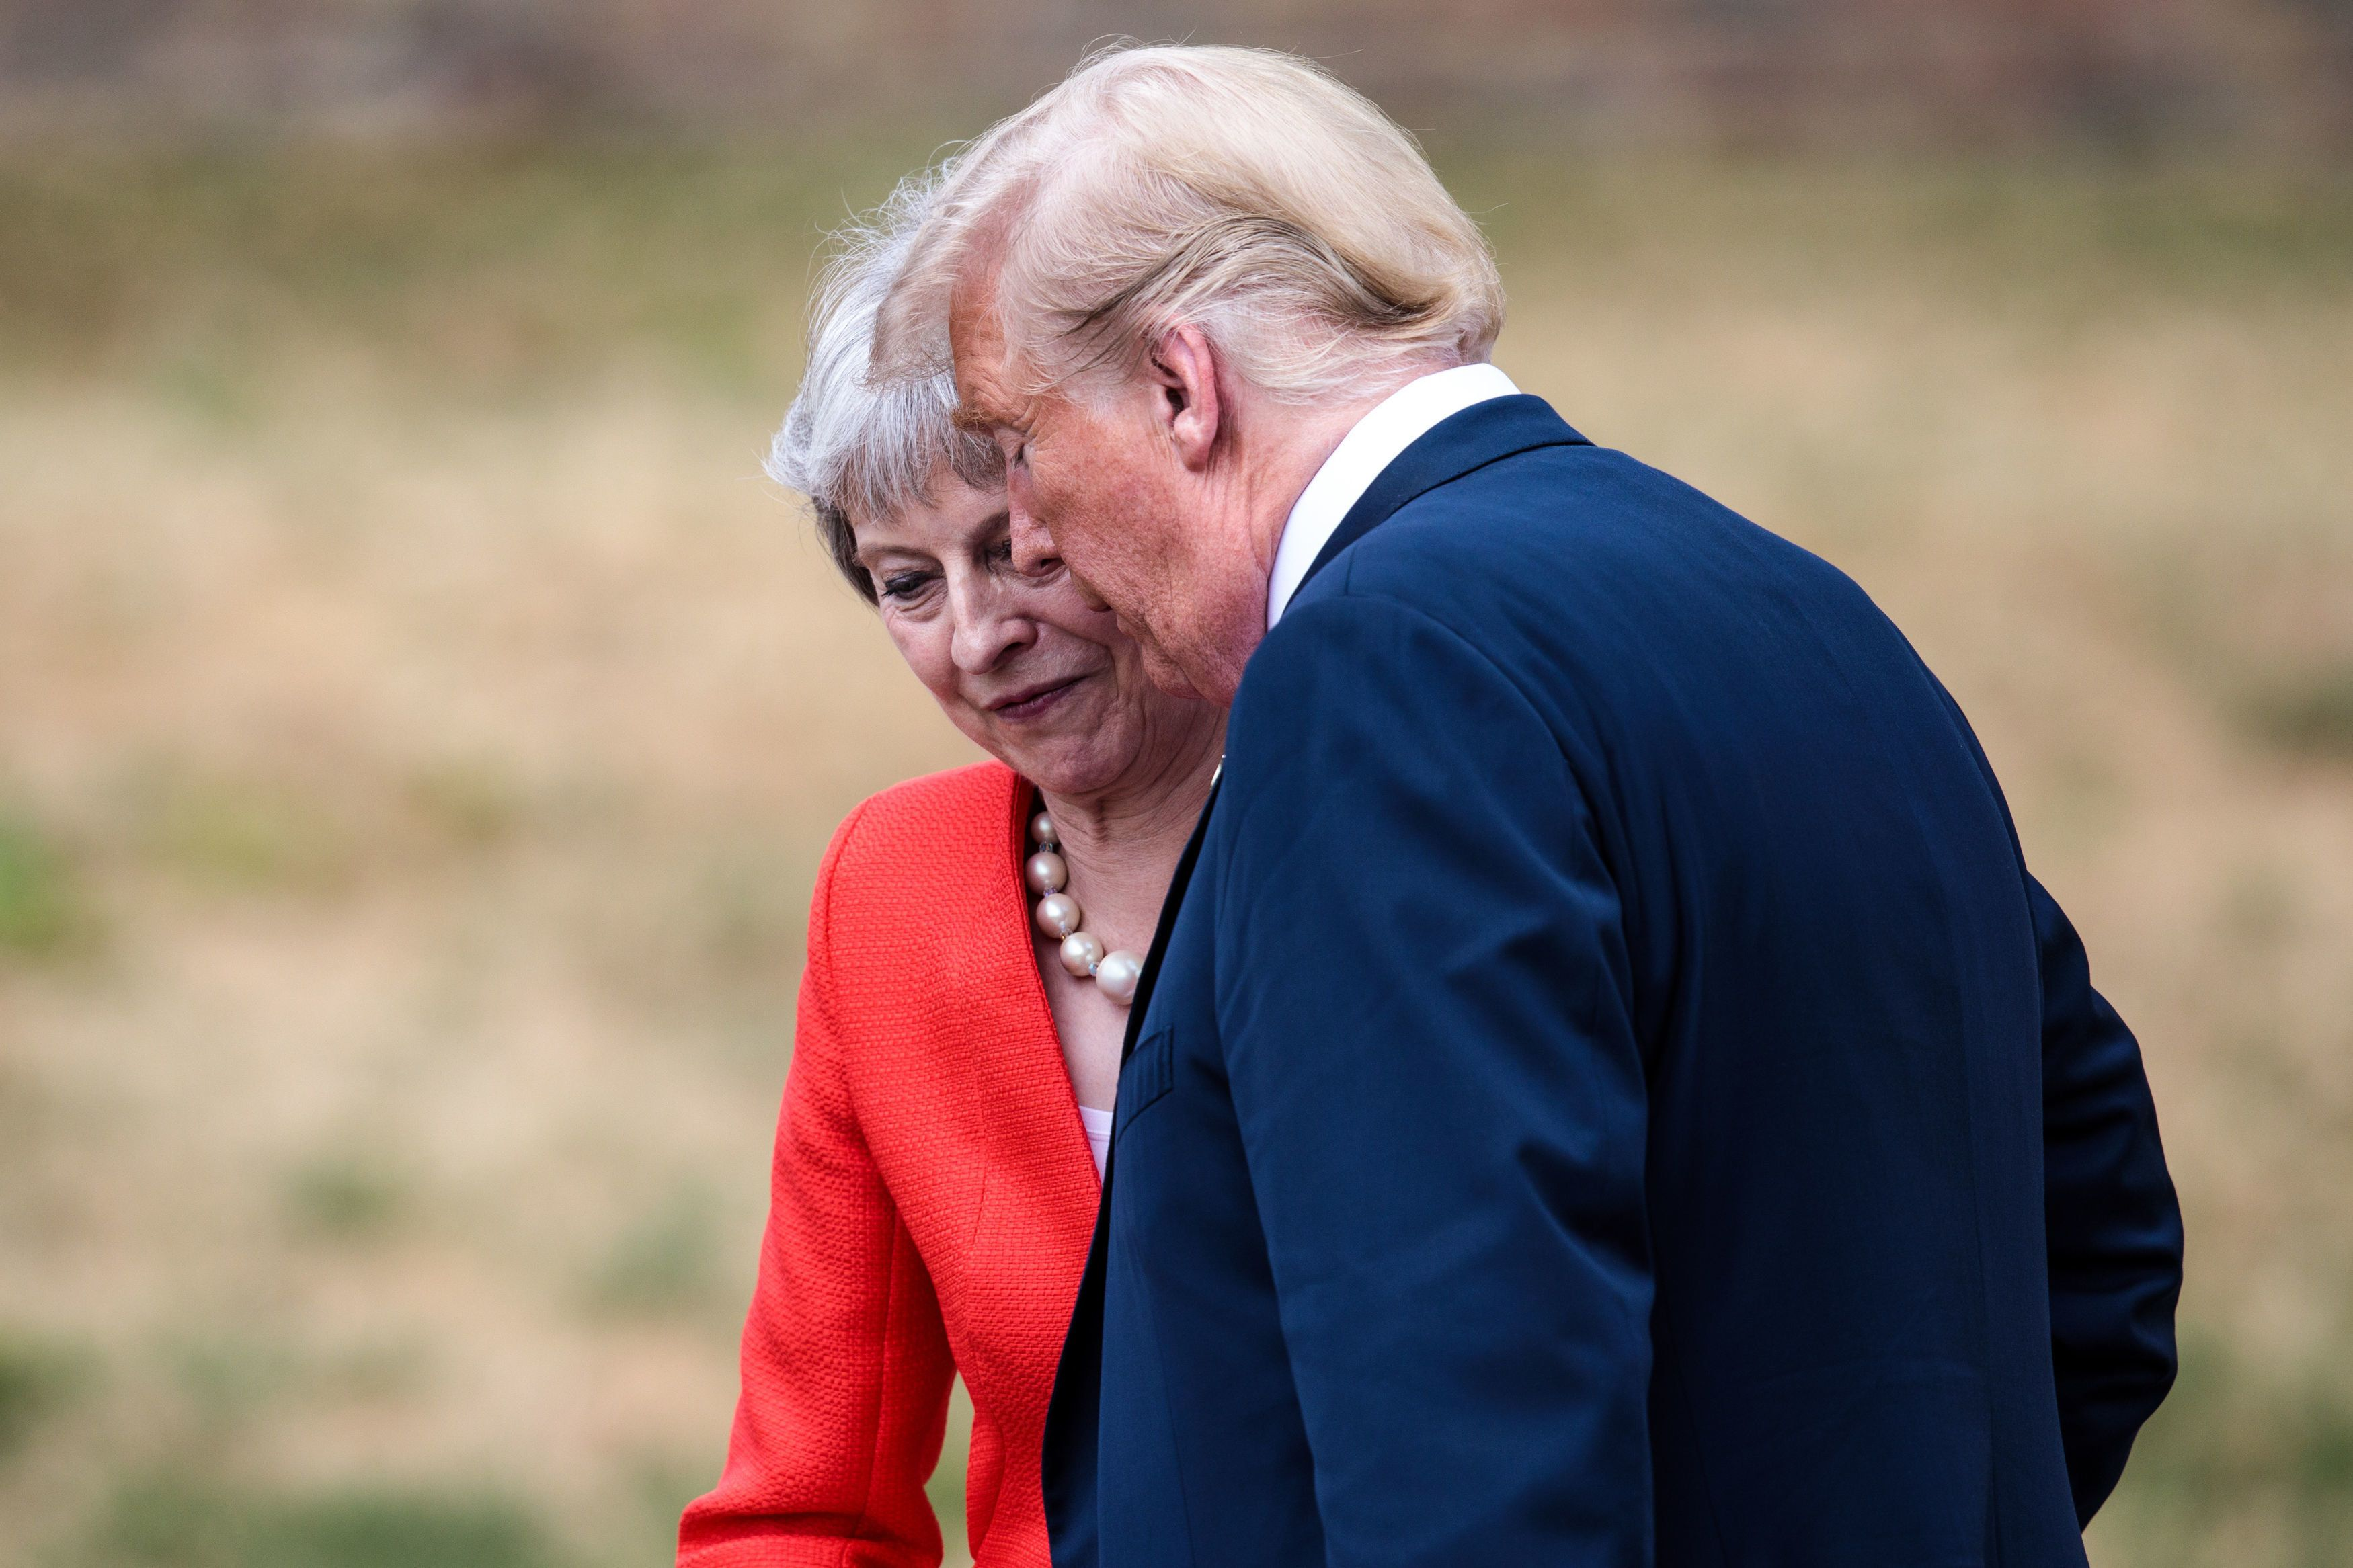 'Sue The EU!' - Donald Trump's Brexit Advice To Theresa May